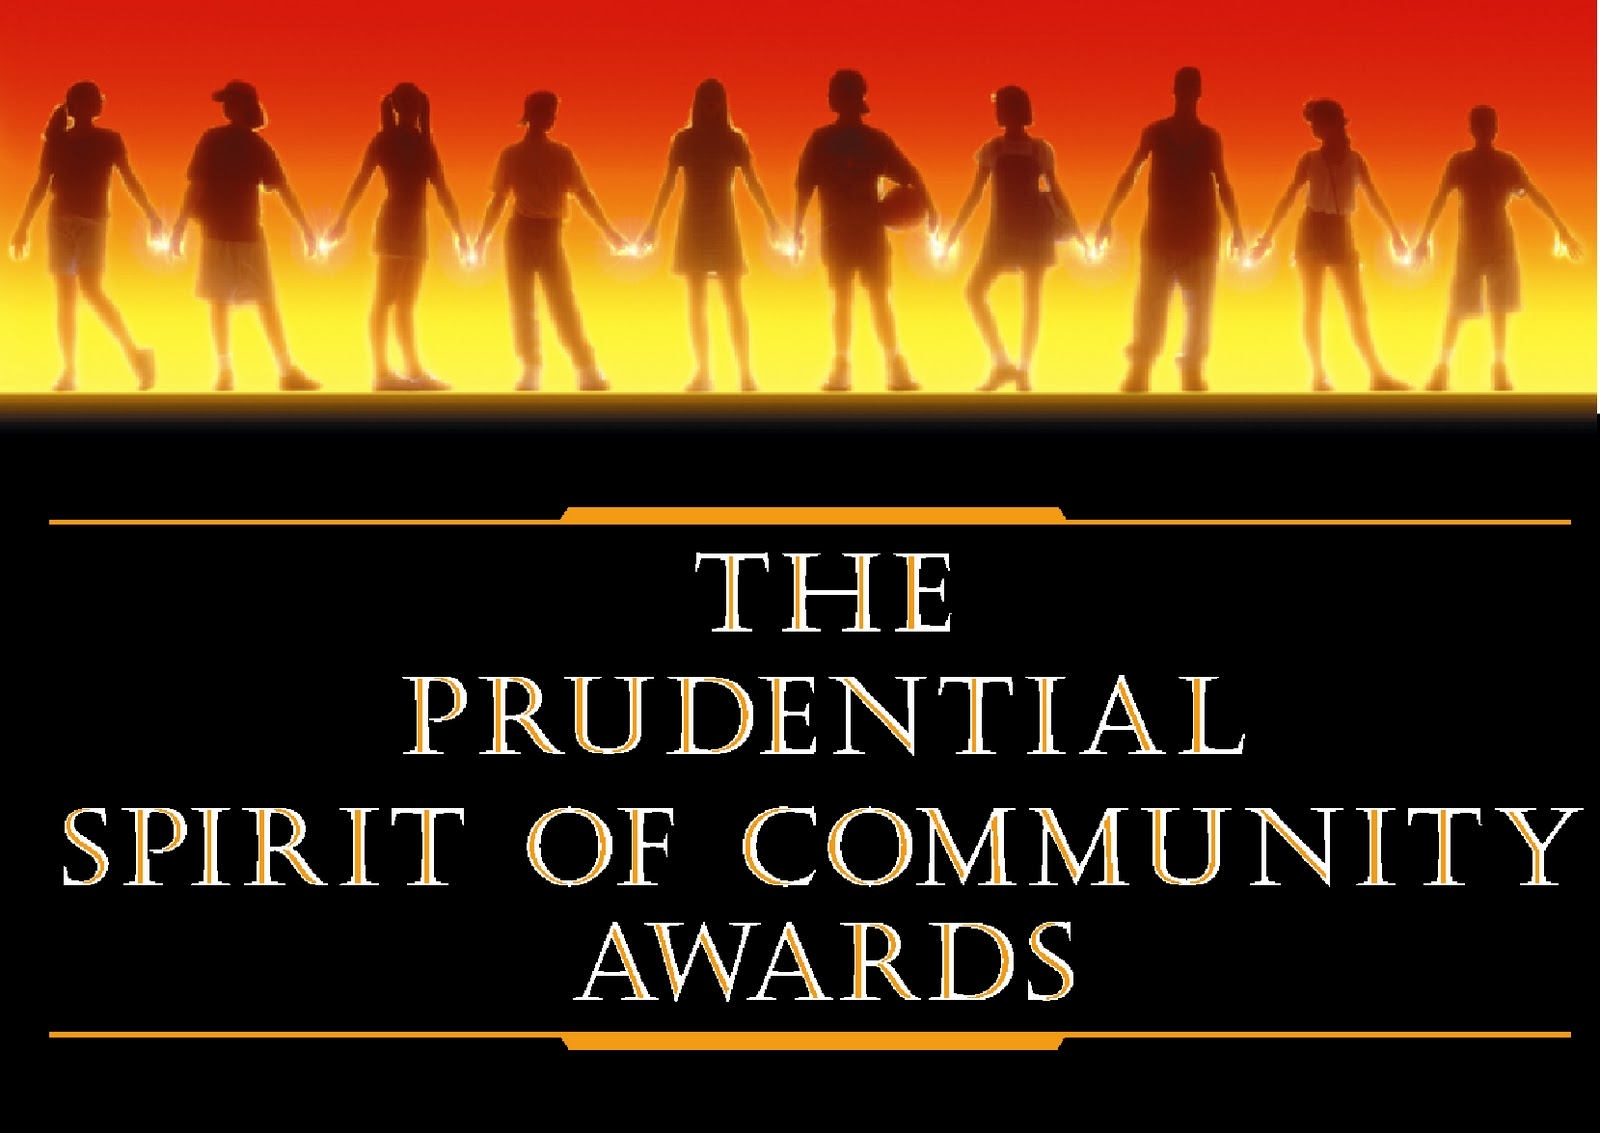 prudential spirit of community awards essay The prudential spirit of community awards program is a youth recognition program based exclusively on community service.